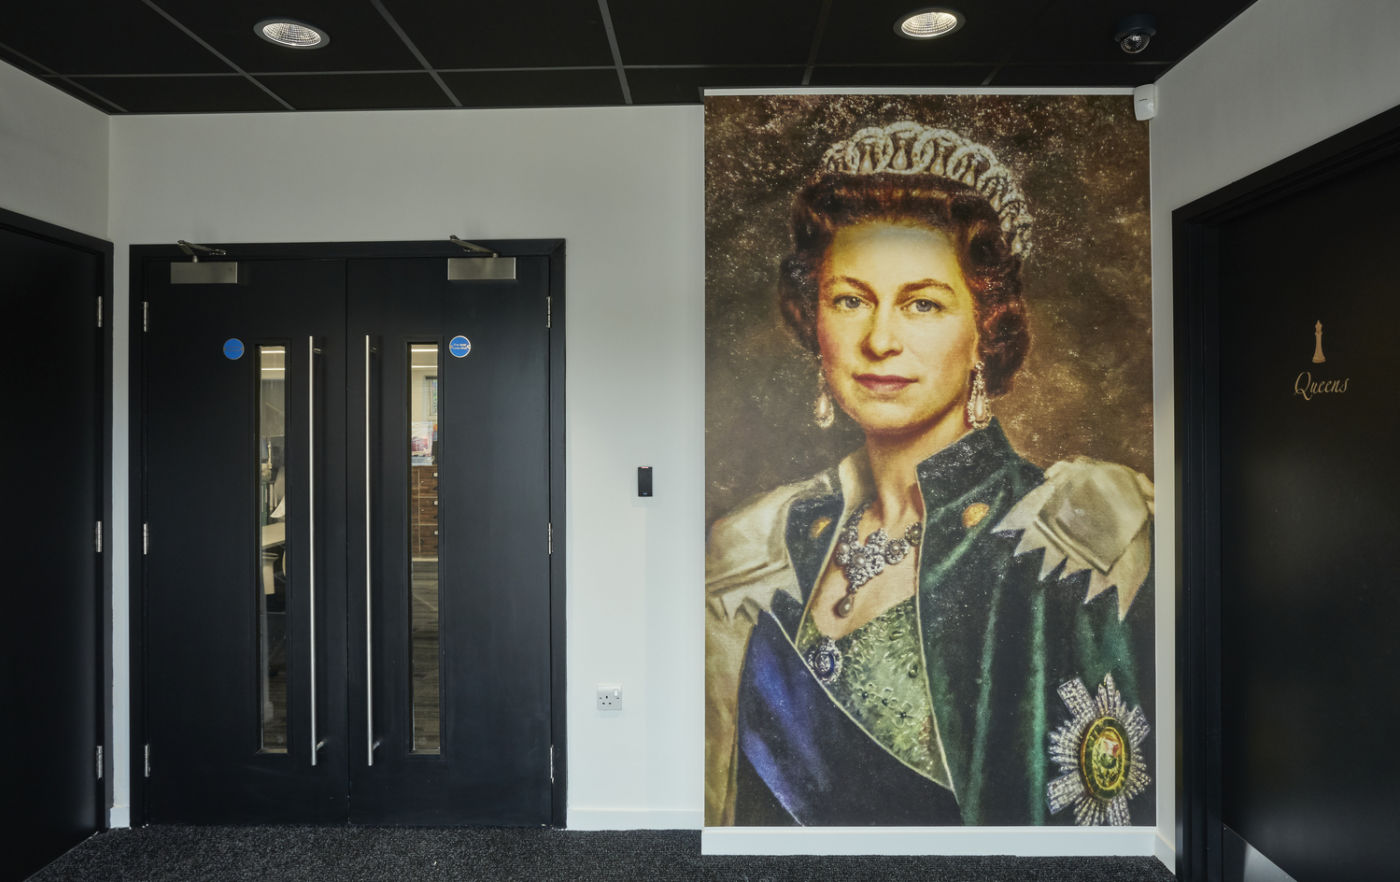 Office reception with large queen elizabeth portrait